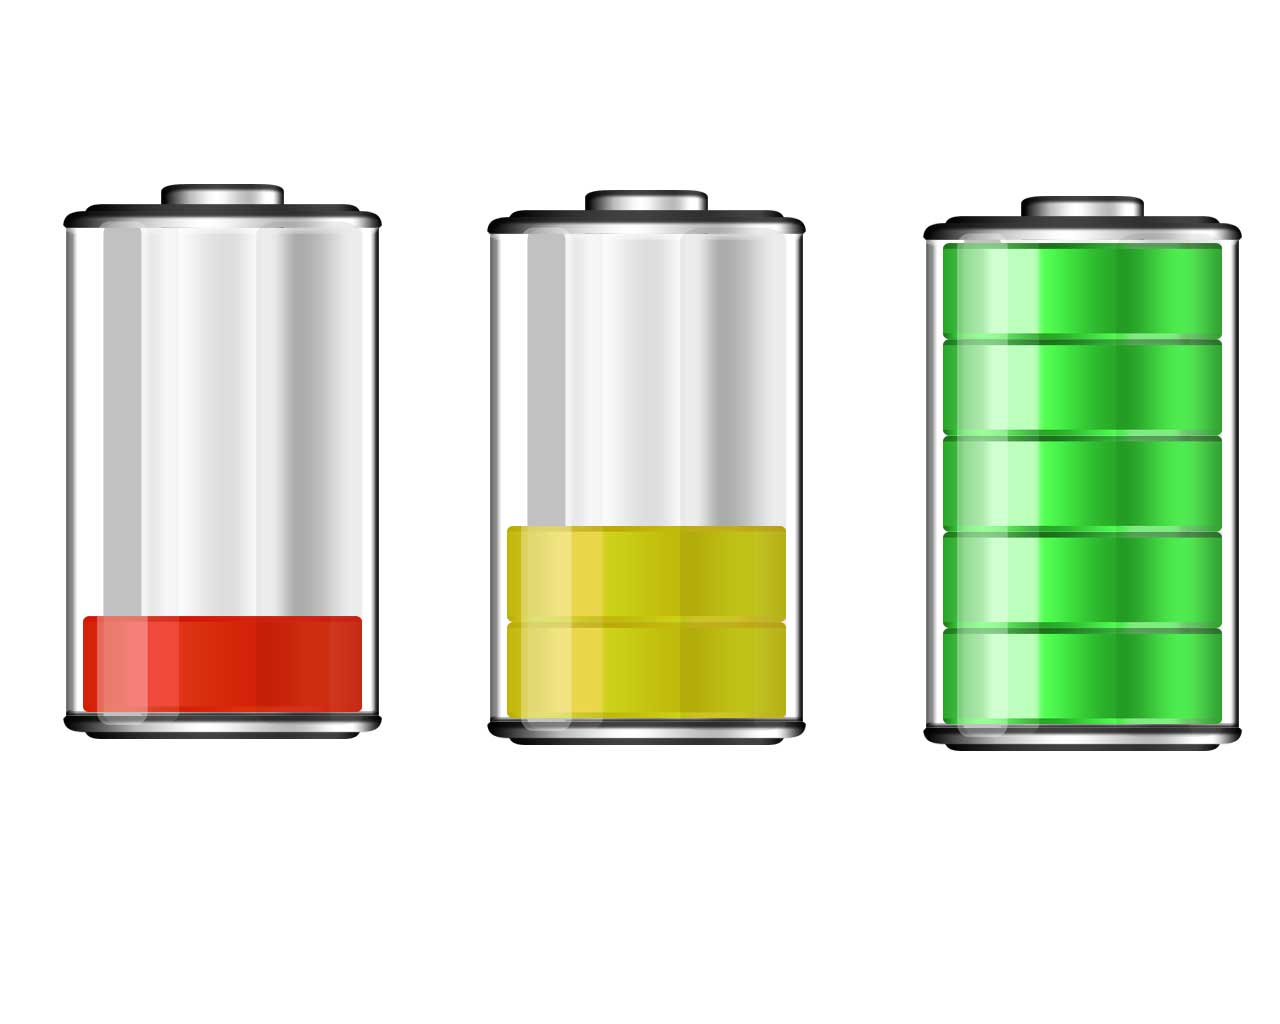 battery download full size im - HD1024×819